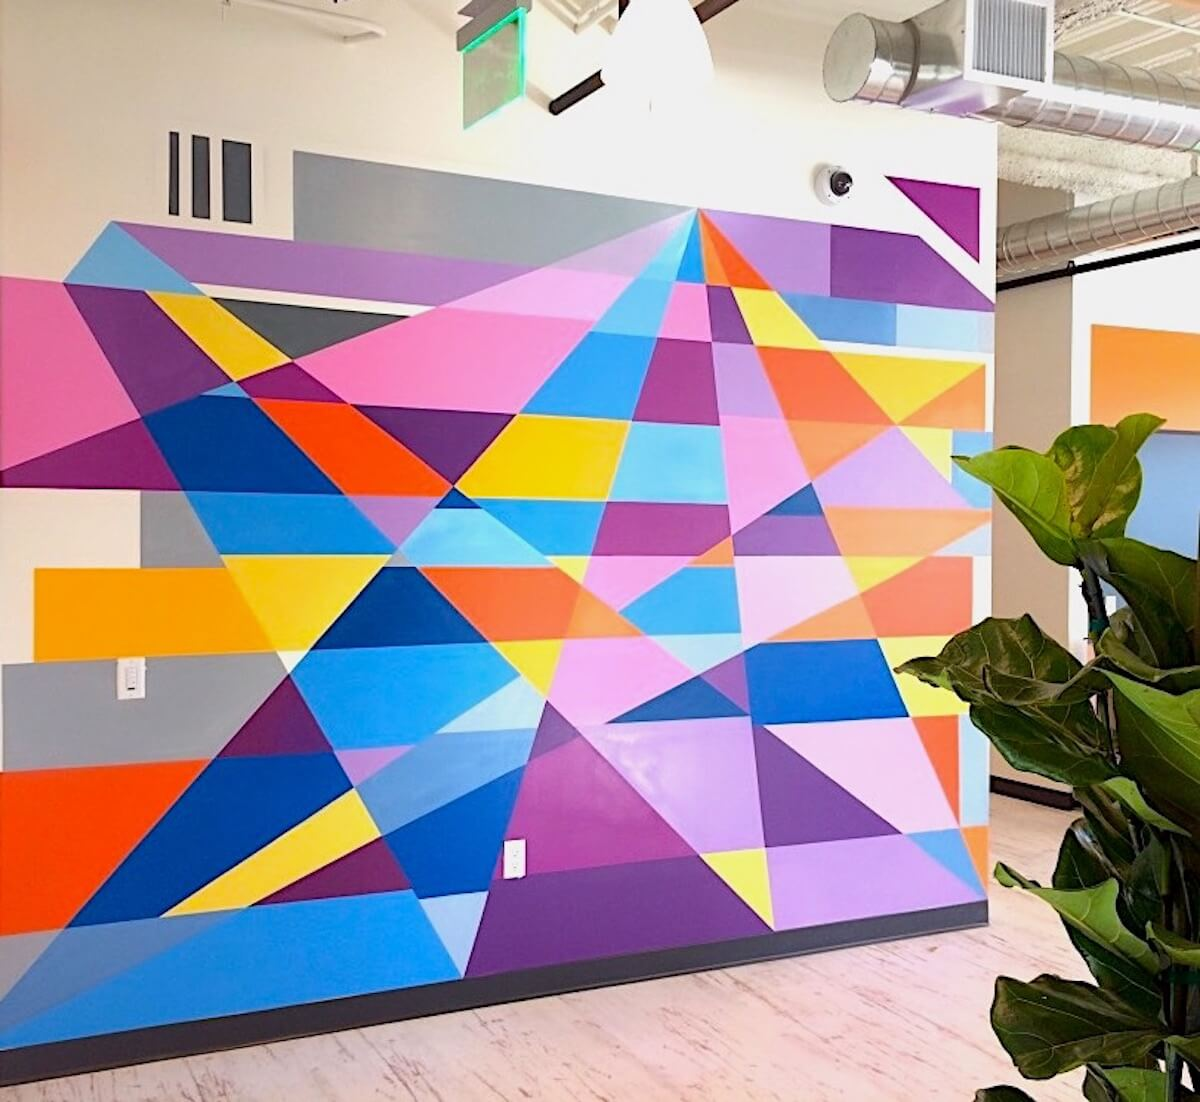 Commissioned Office Mural for ServiceNow | San Francisco USA, 2017